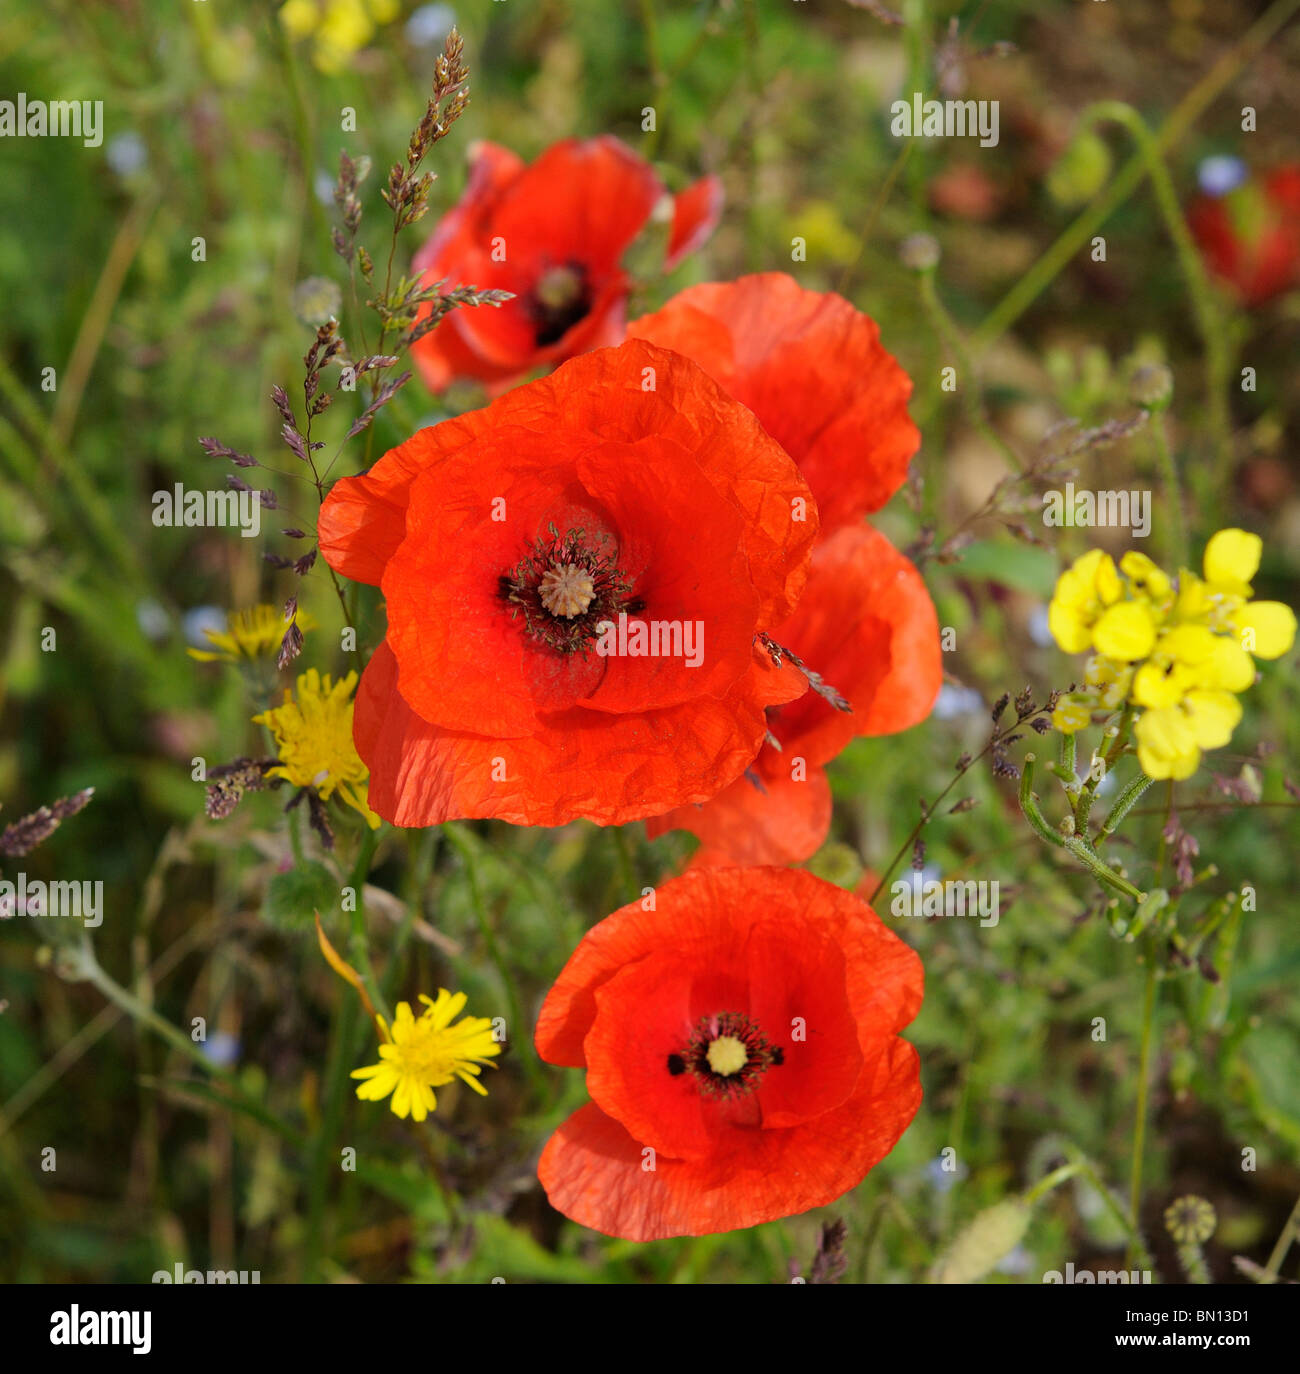 Poppies and wild flowers growing on the edge of a field of barley English countryside - Stock Photo